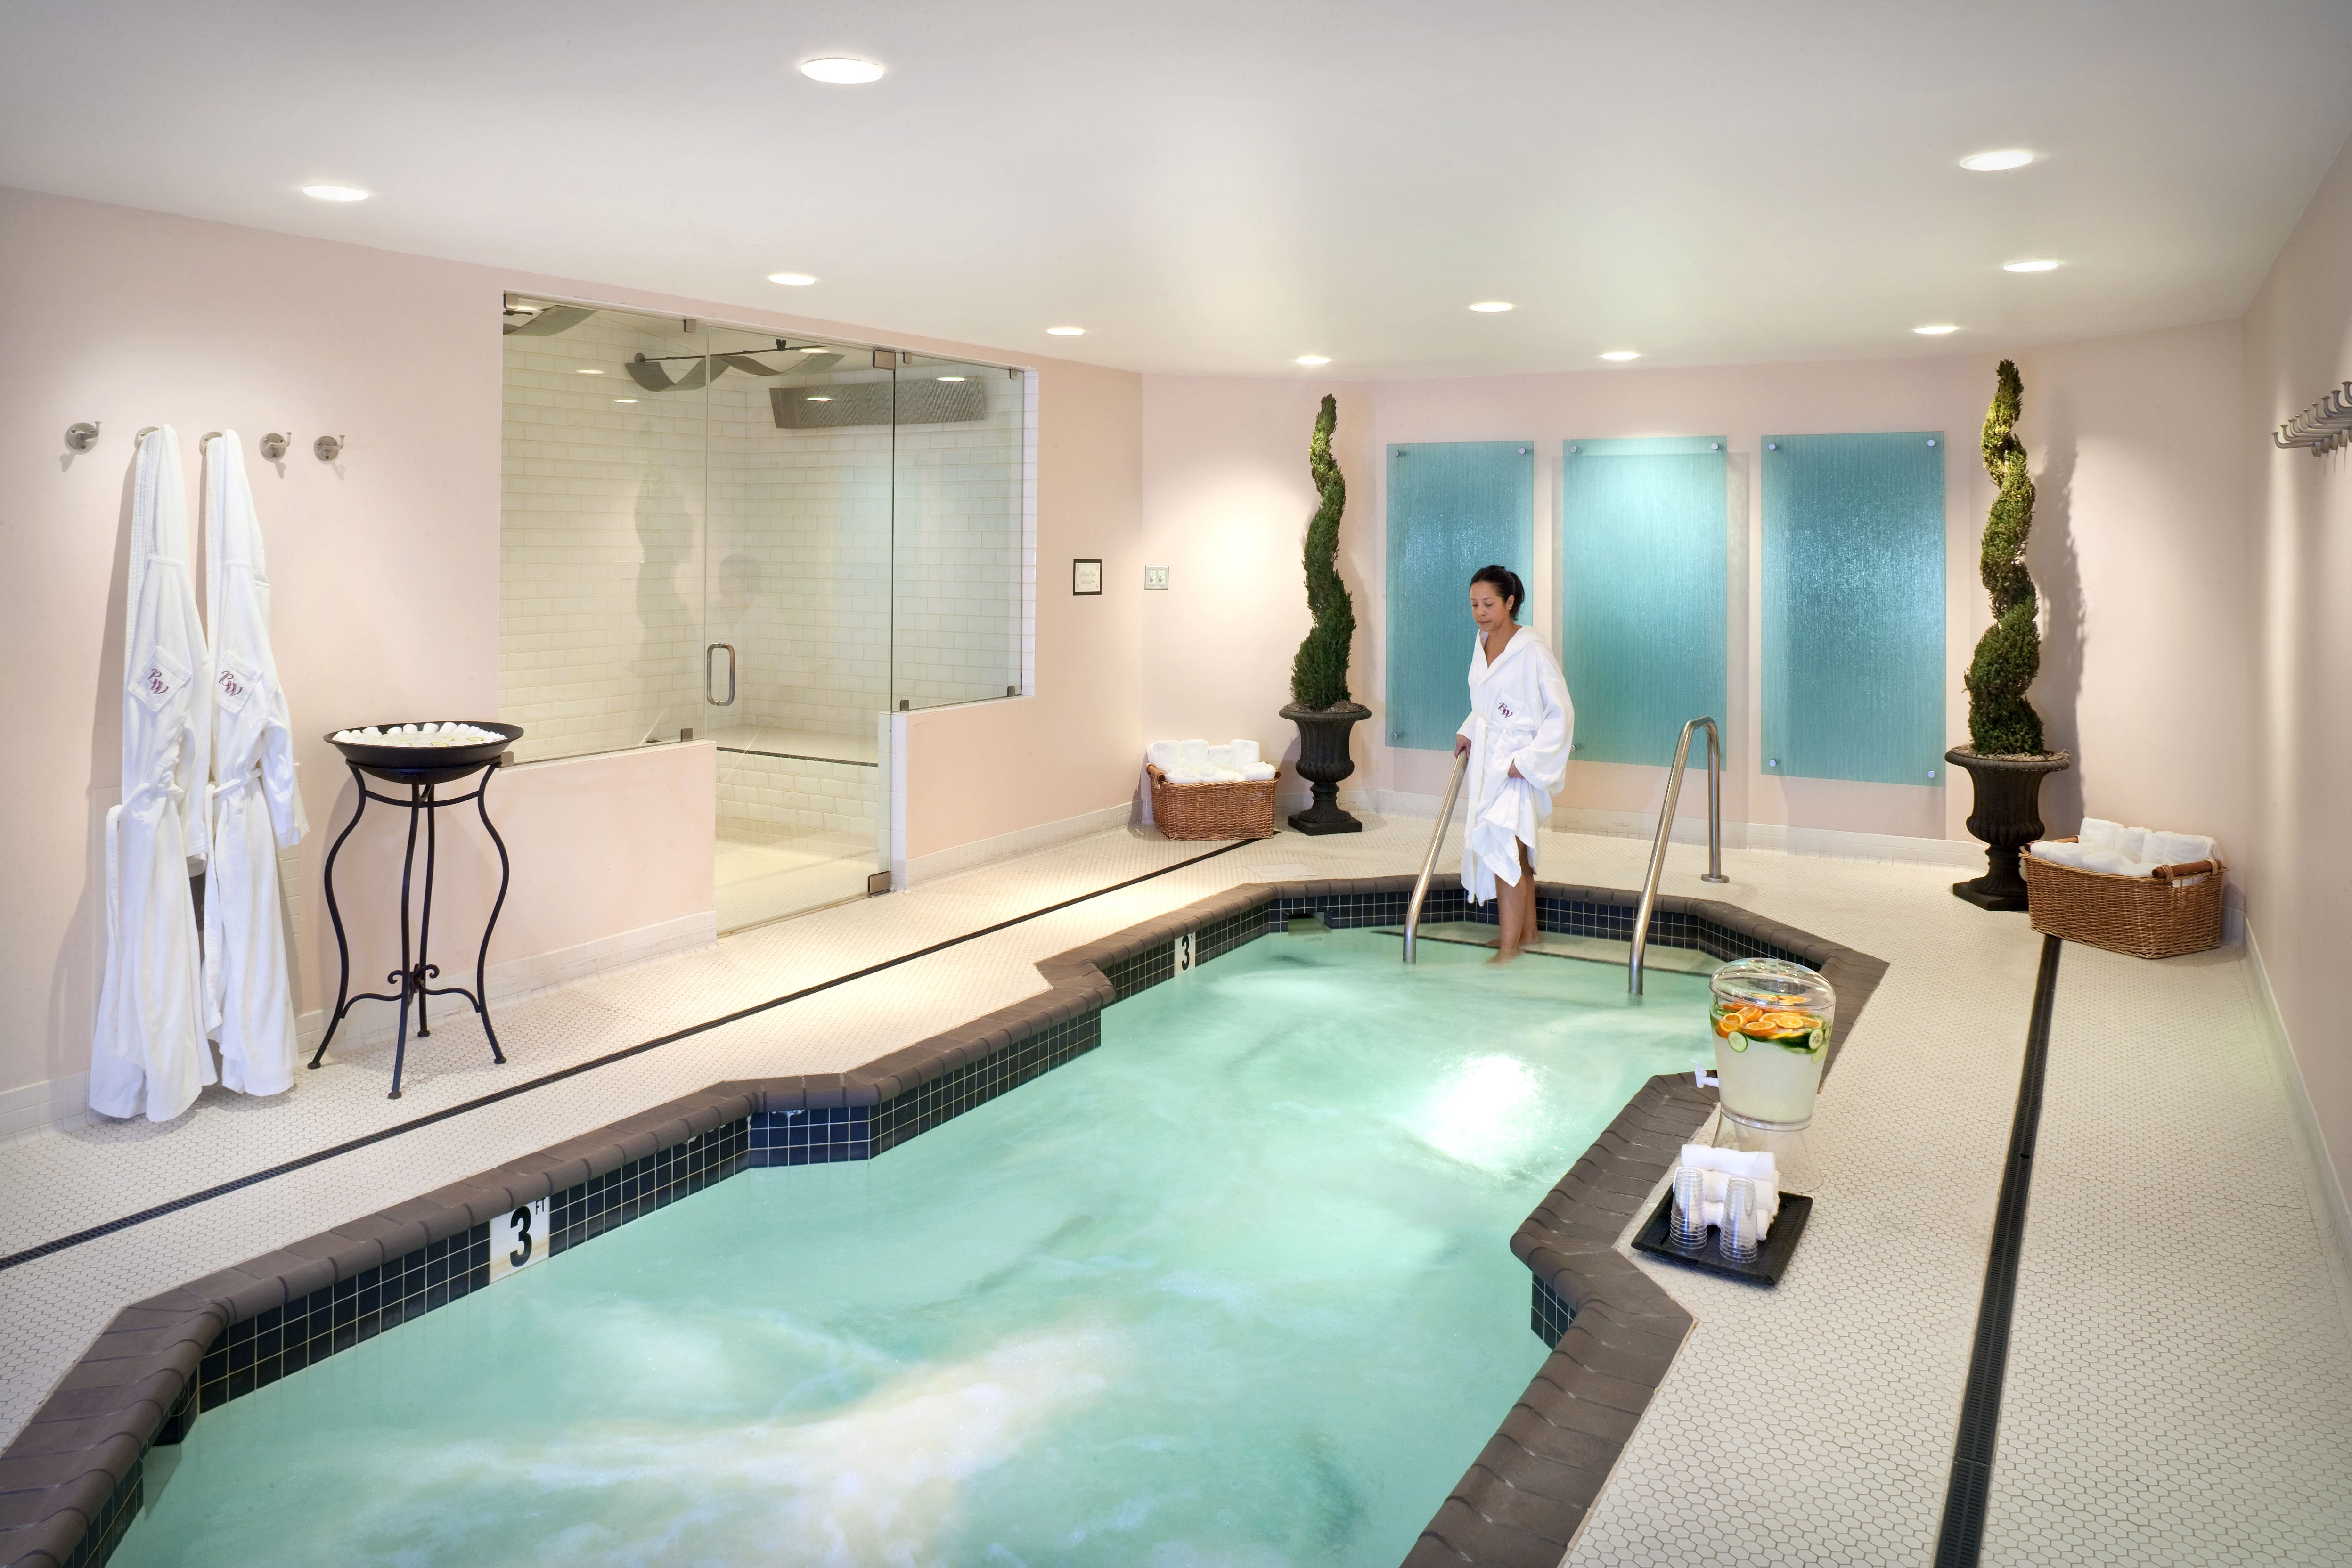 The Nine Most Luxurious Spas in San Francisco - Racked SF